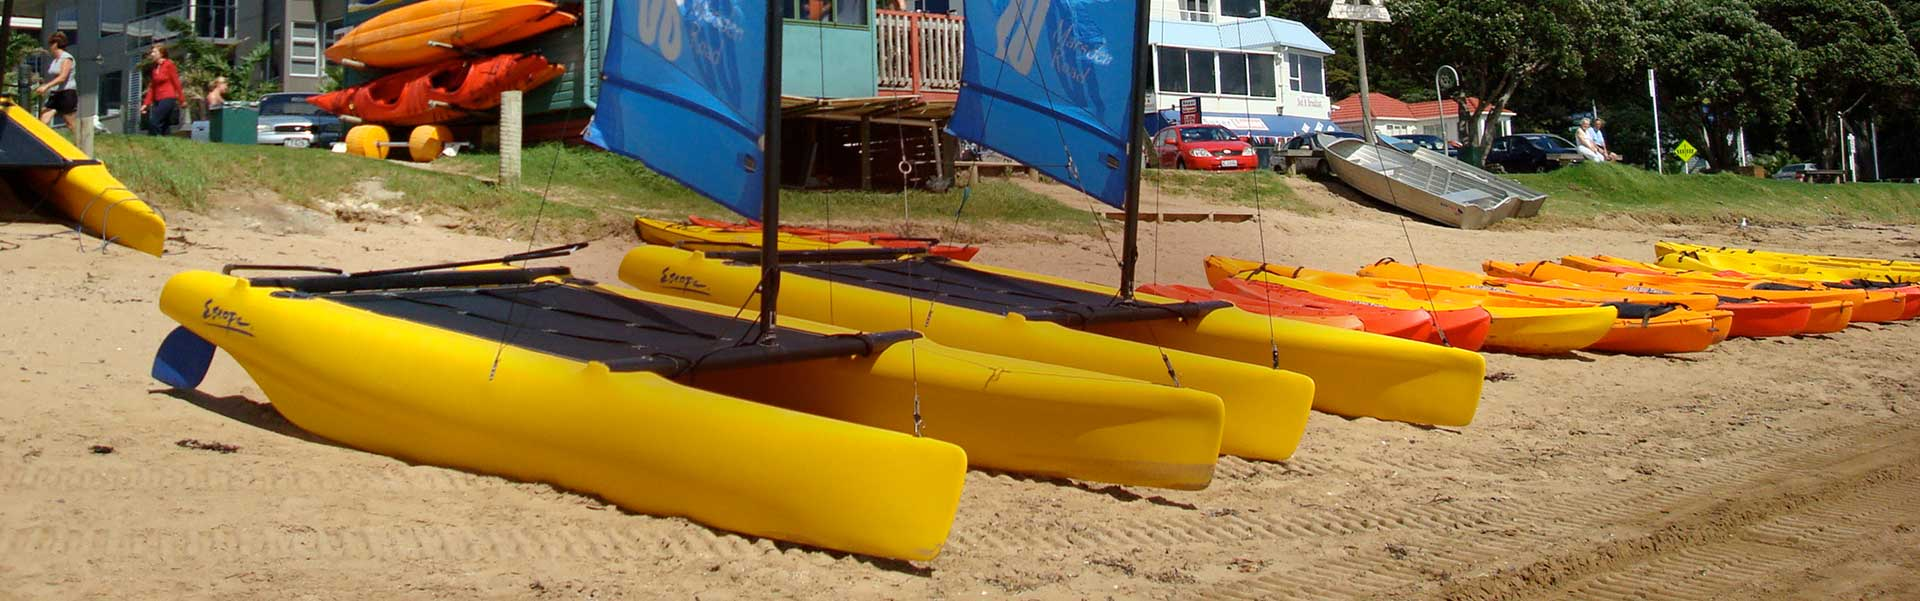 Kayaks Bay Beach Hire